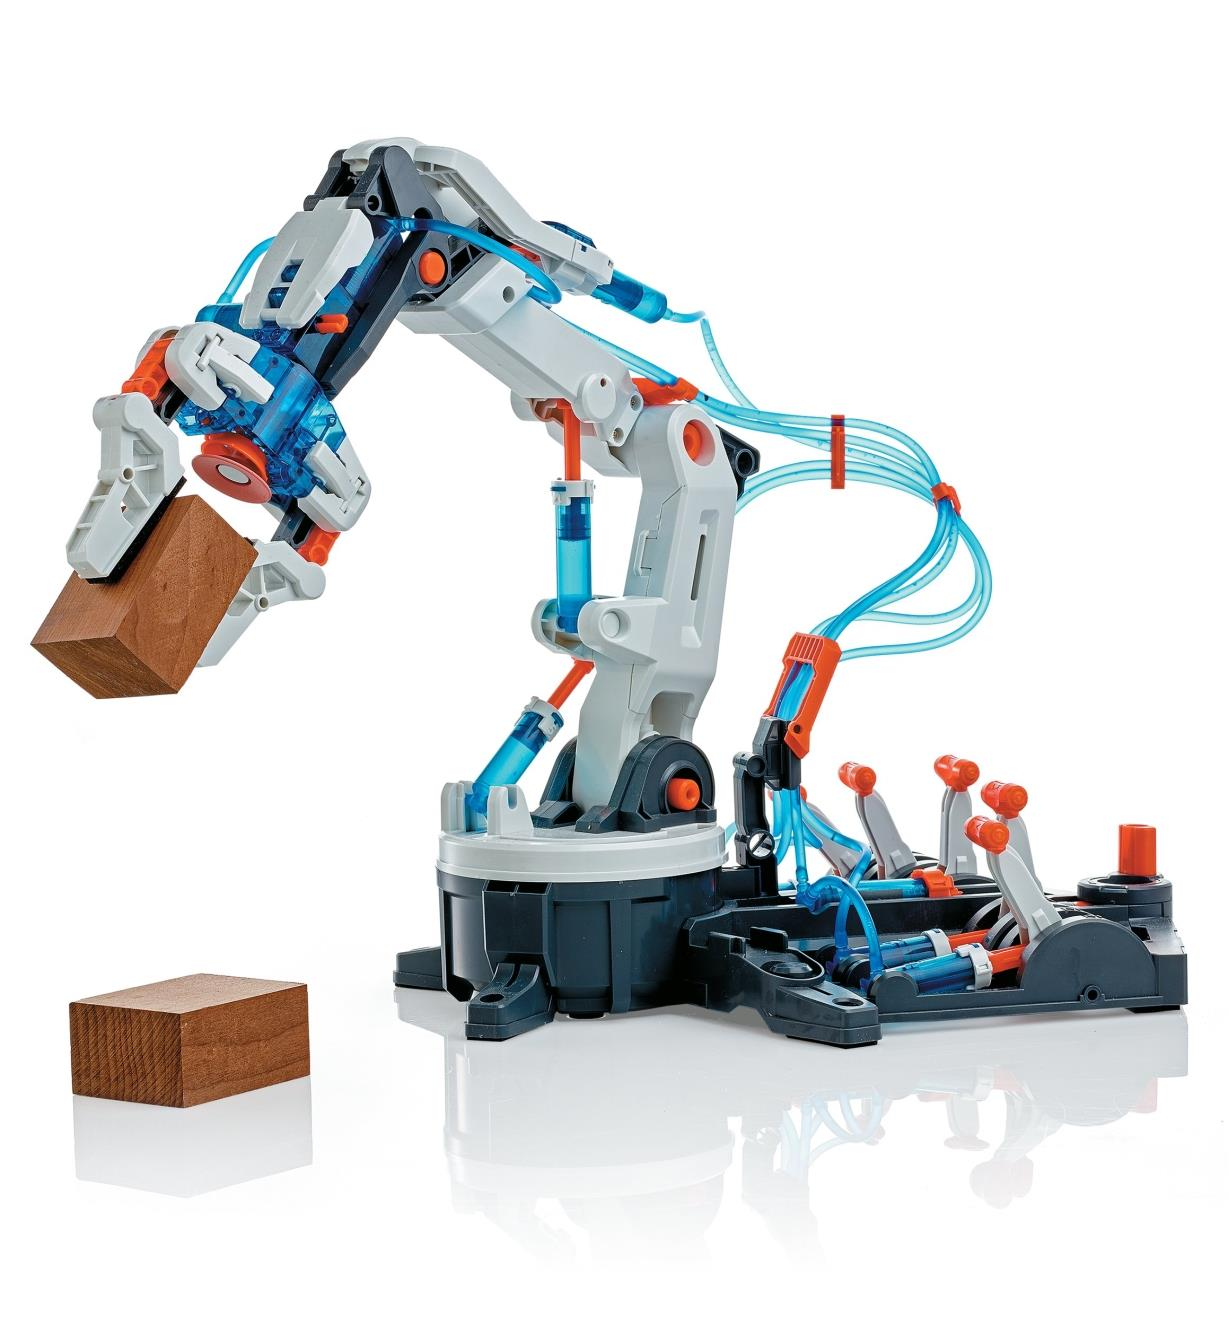 Hydraulic Robot Arm grips a wooden block